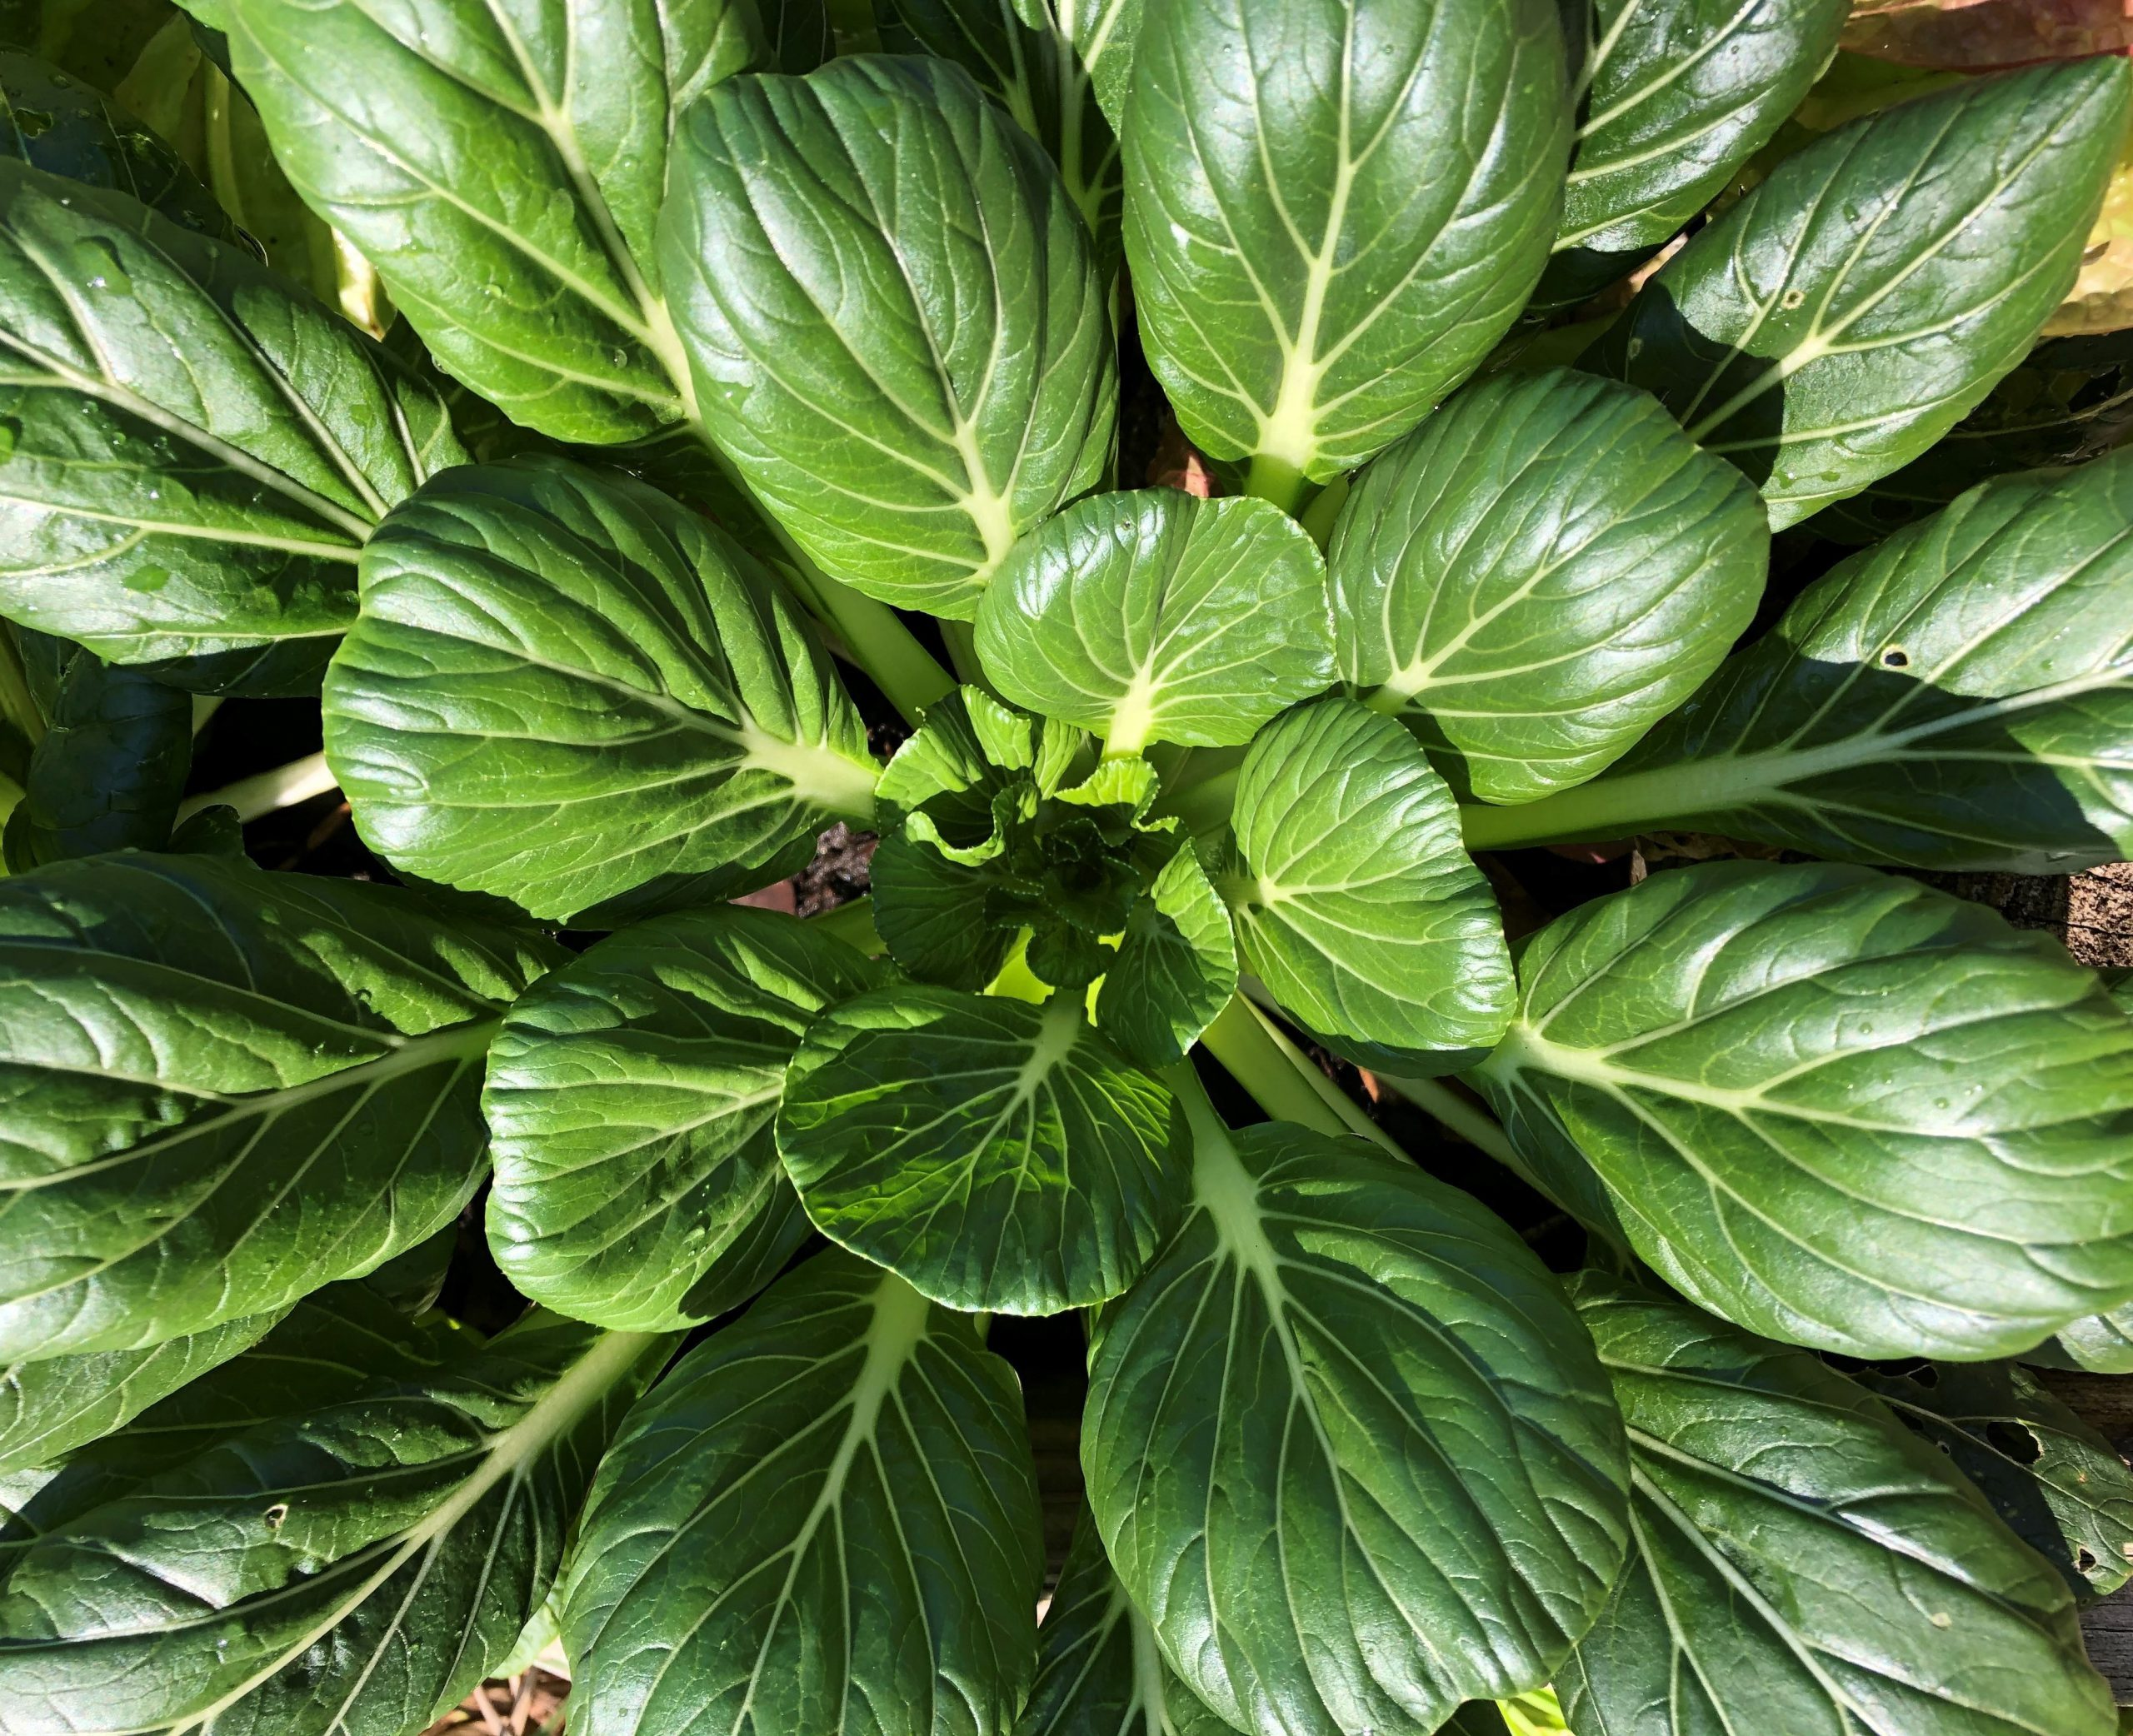 Tatsoi is a low-growing green with spoon-shaped, dark-green leaves. Photo by Molly Jameson.